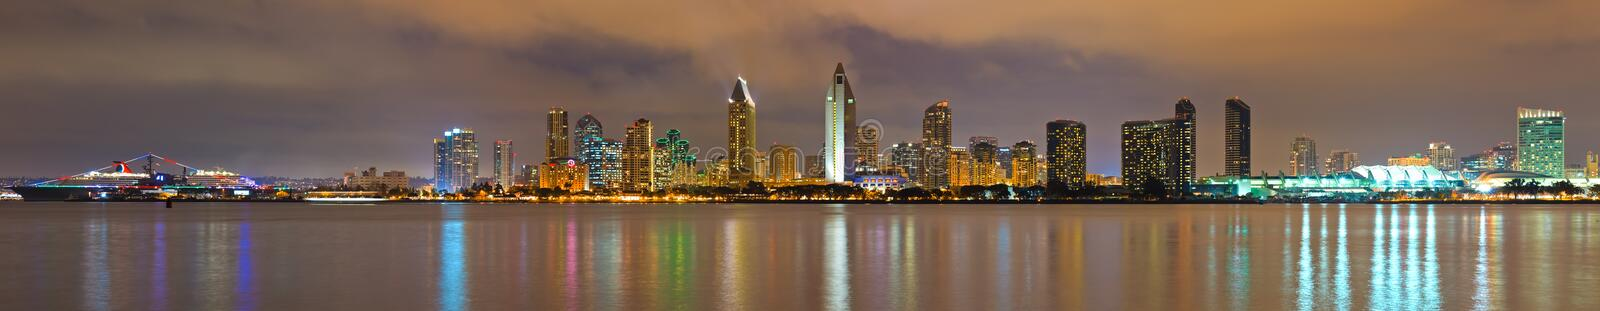 Download San Diego panorama stock image. Image of landmark, panorama - 19167509